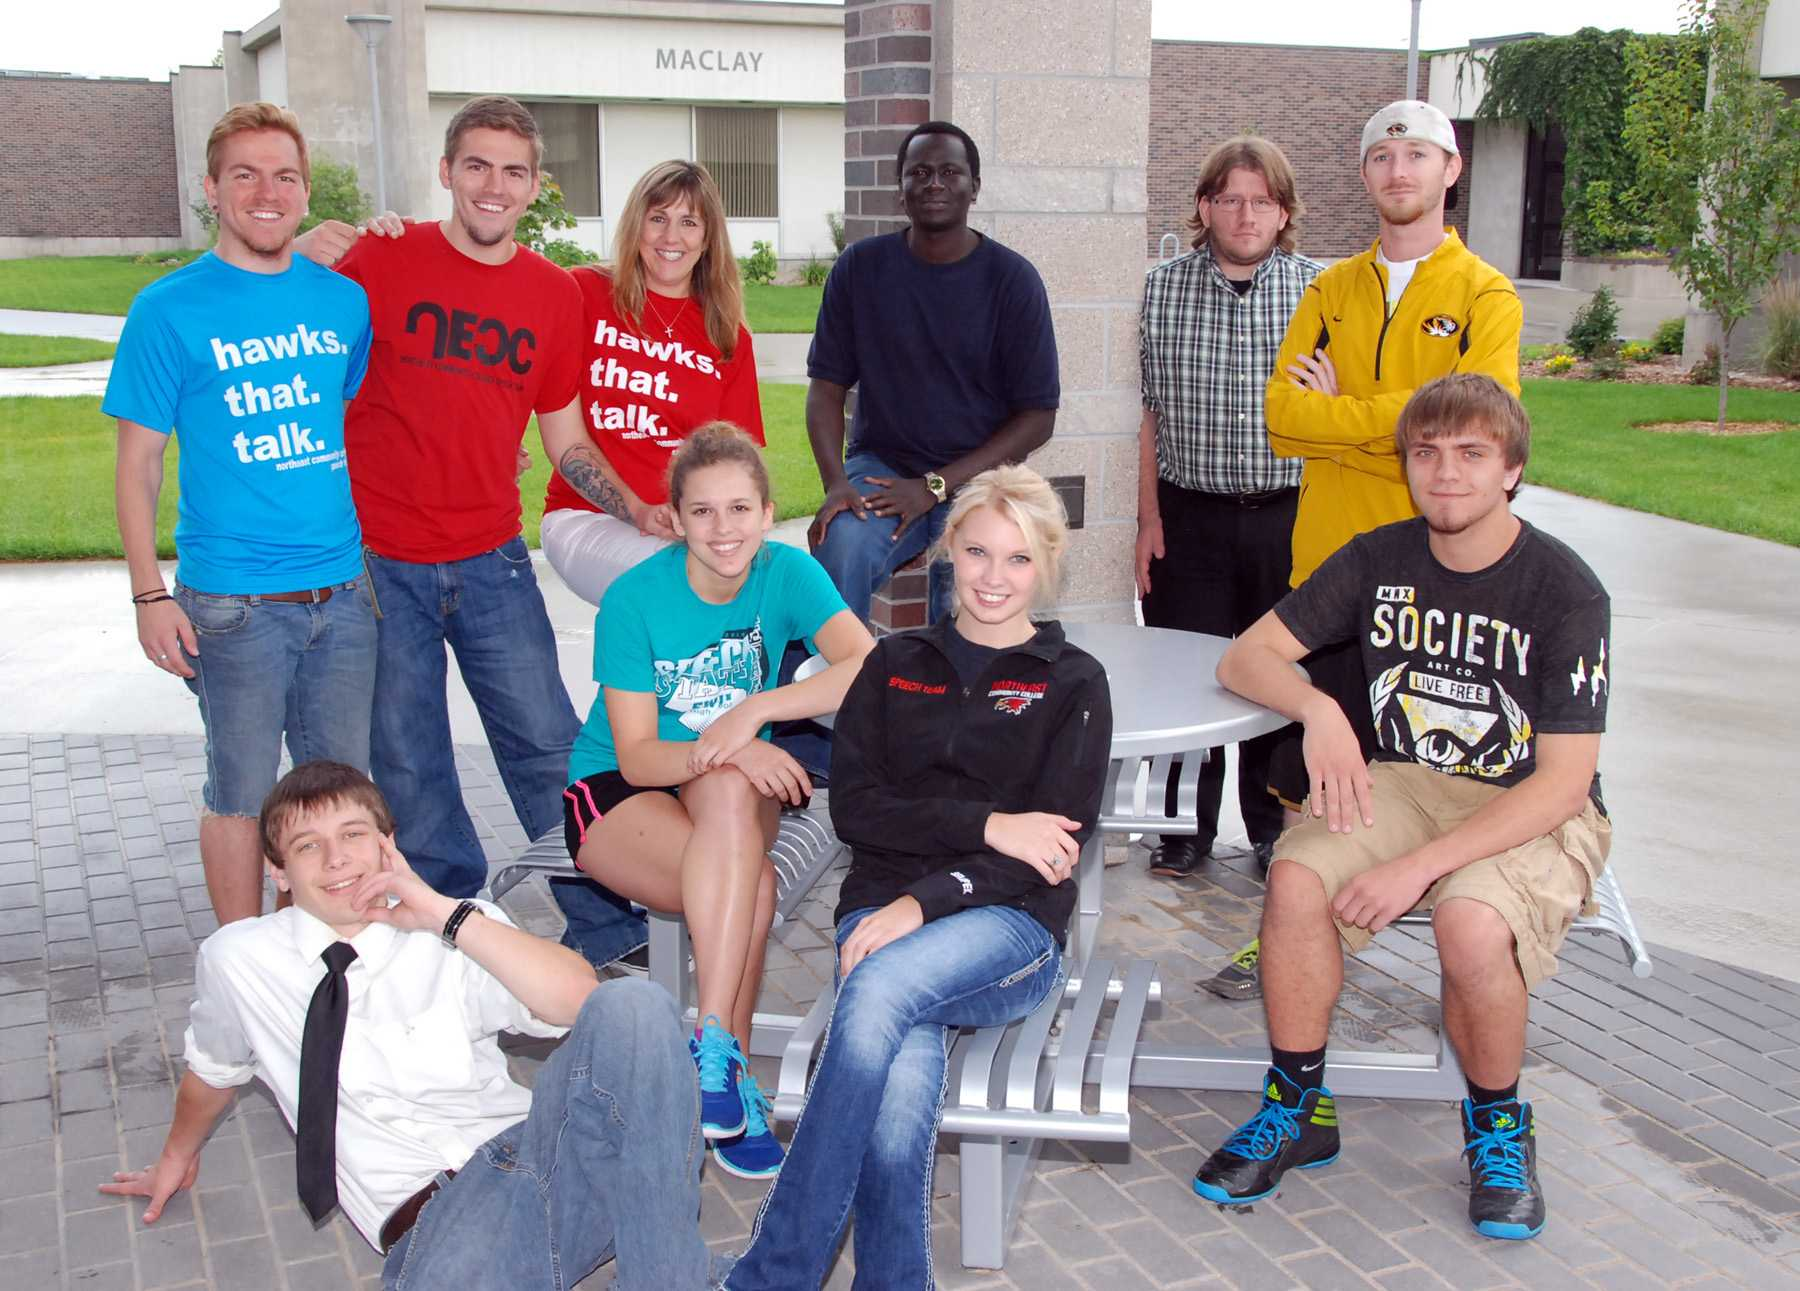 Members of the 2014-15 speech team at Northeast Community College include (front row, from left) Dylan Arnold, Jasmine Lee Phander, Drew Sempek, and Timmy Browning. Back row (from left) William Nelson, Robert Nelson, Terry Nelson, head coach, Musa Fofana, Ronnie Ware, assistant coach, and Joe Lose. (Courtesy Photo)